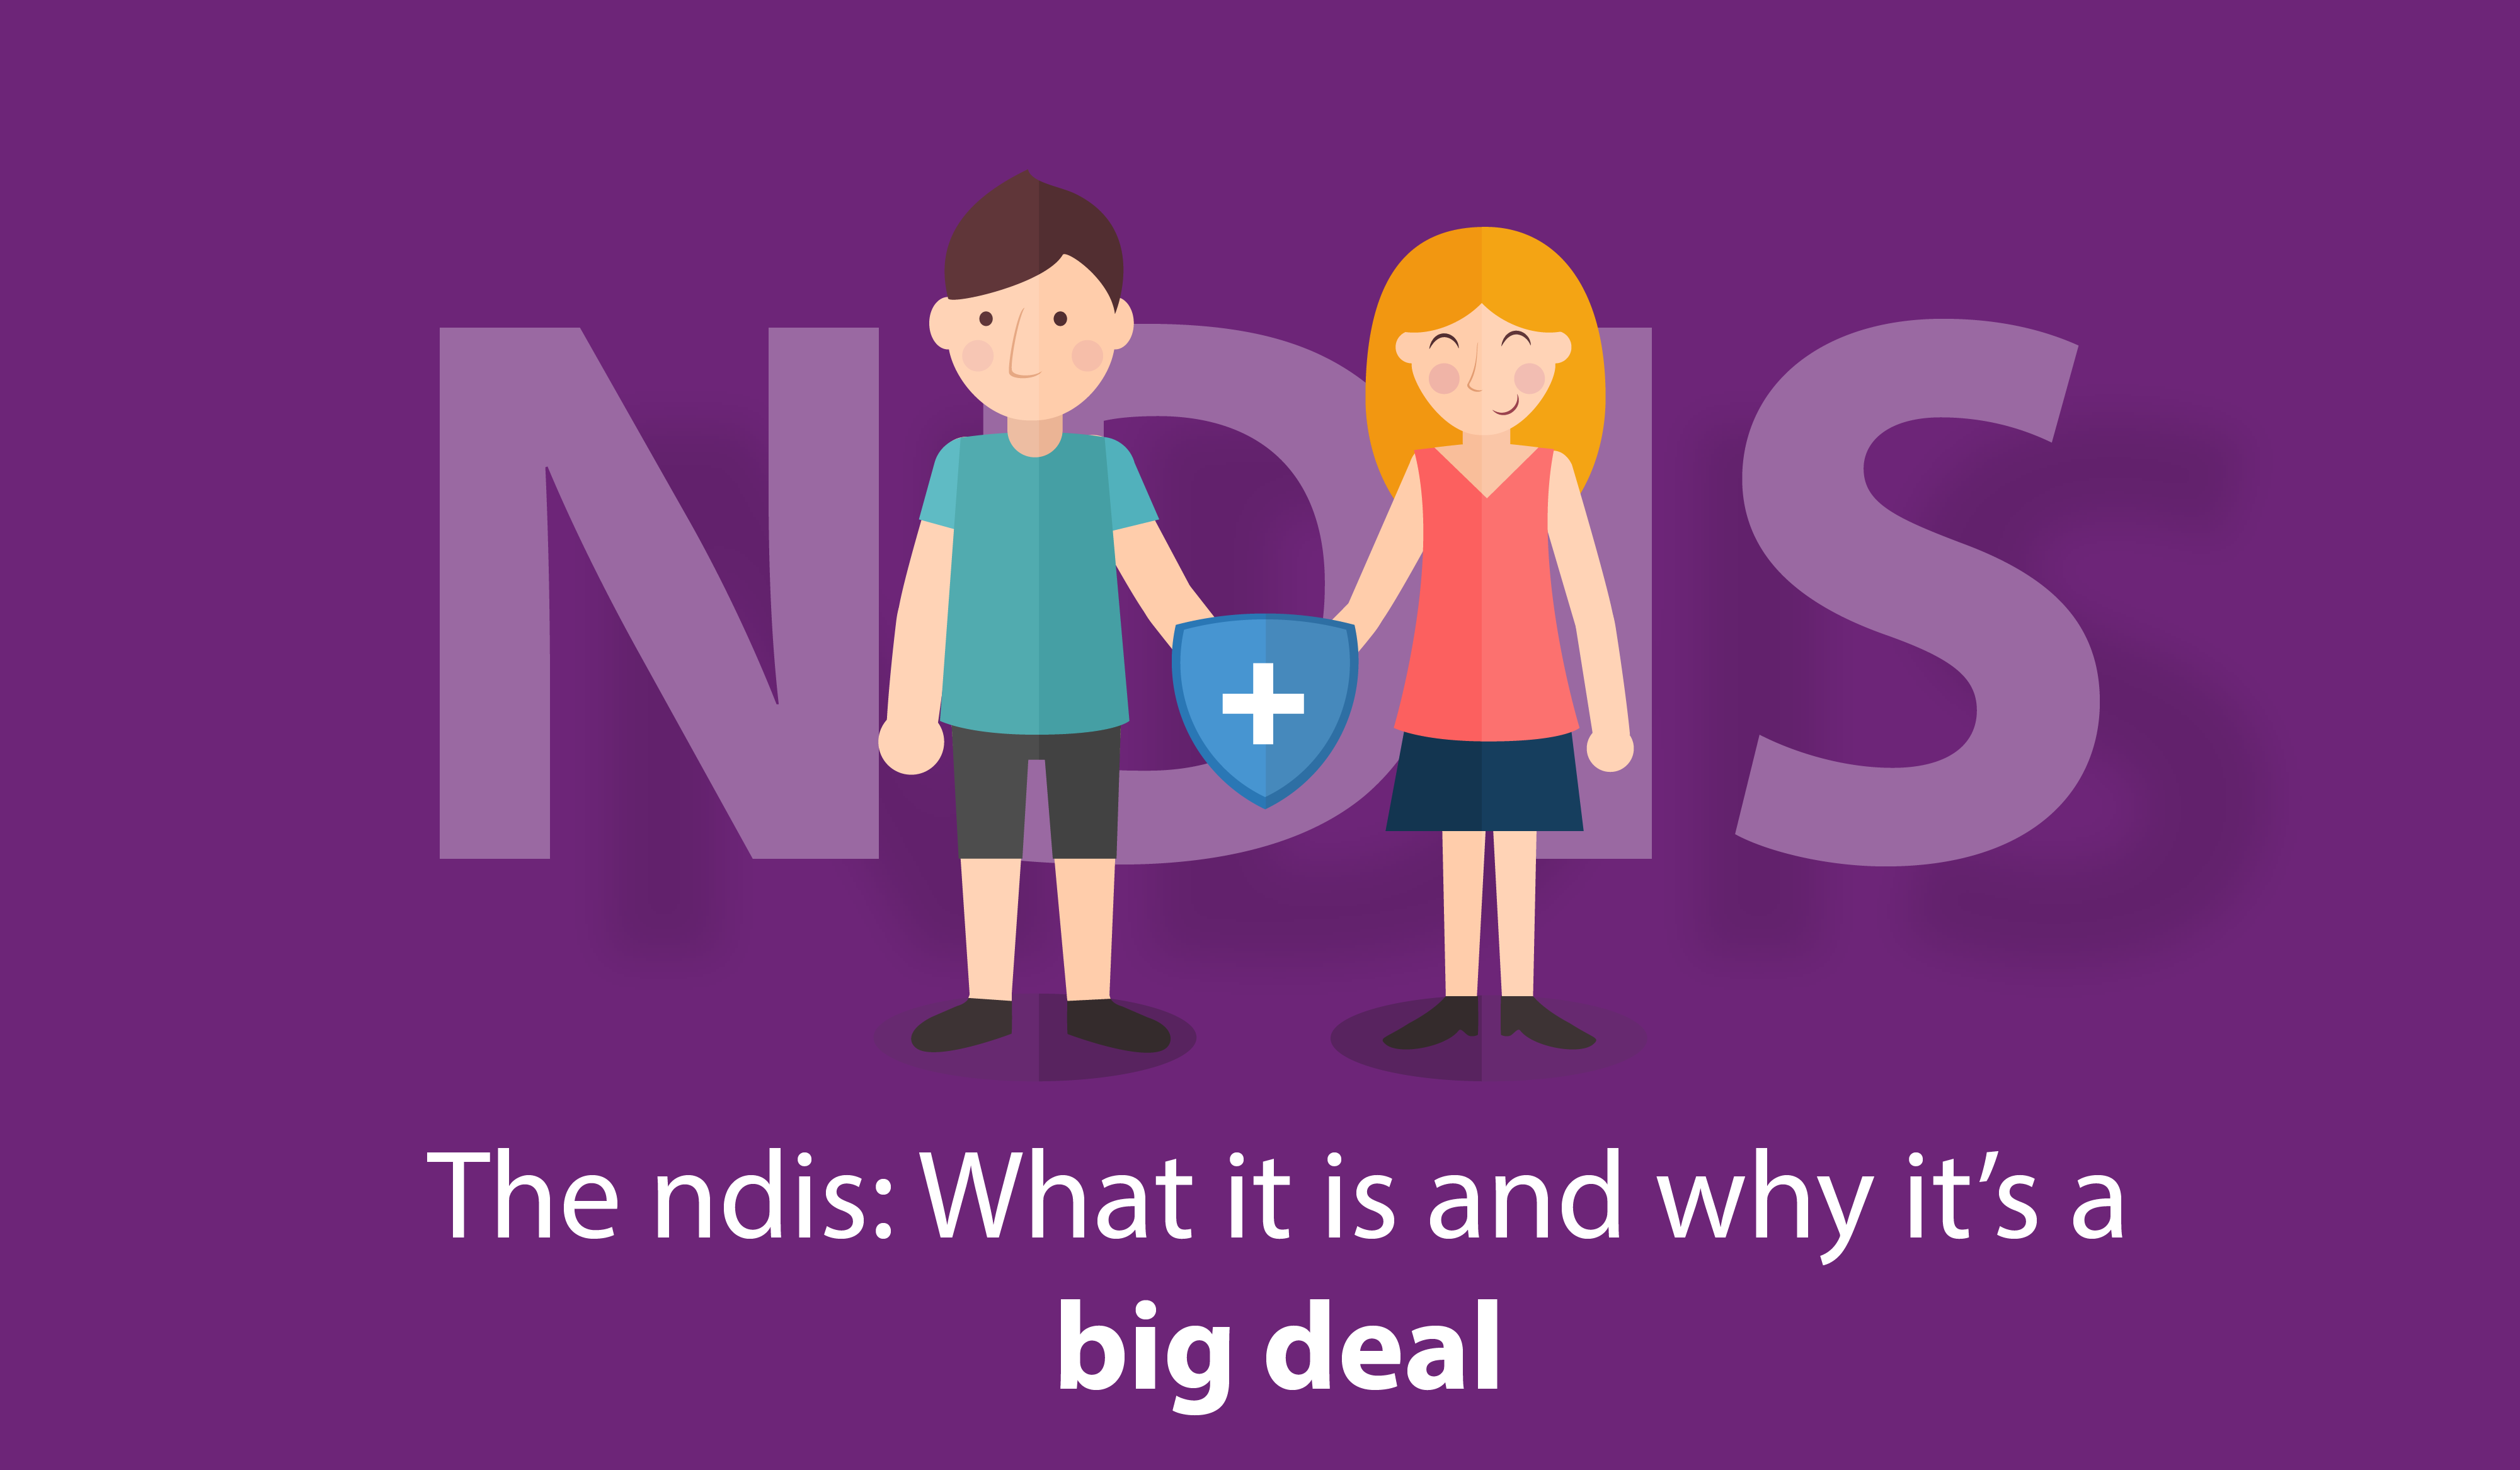 The ndis: What it is and why it's a big deal.